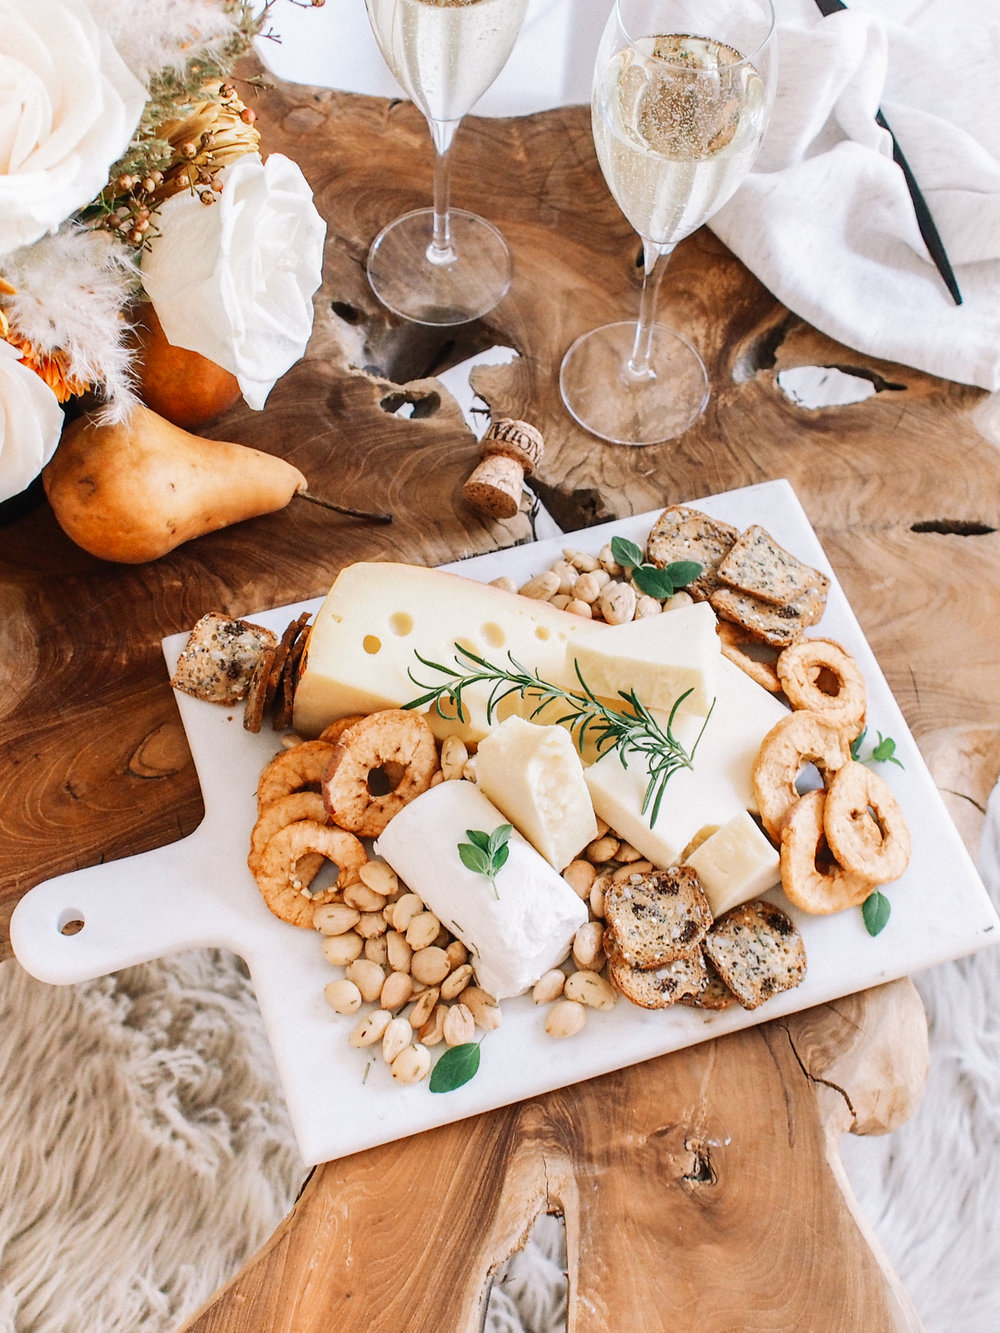 How to create a cheeseboard | A Fabulous Fete